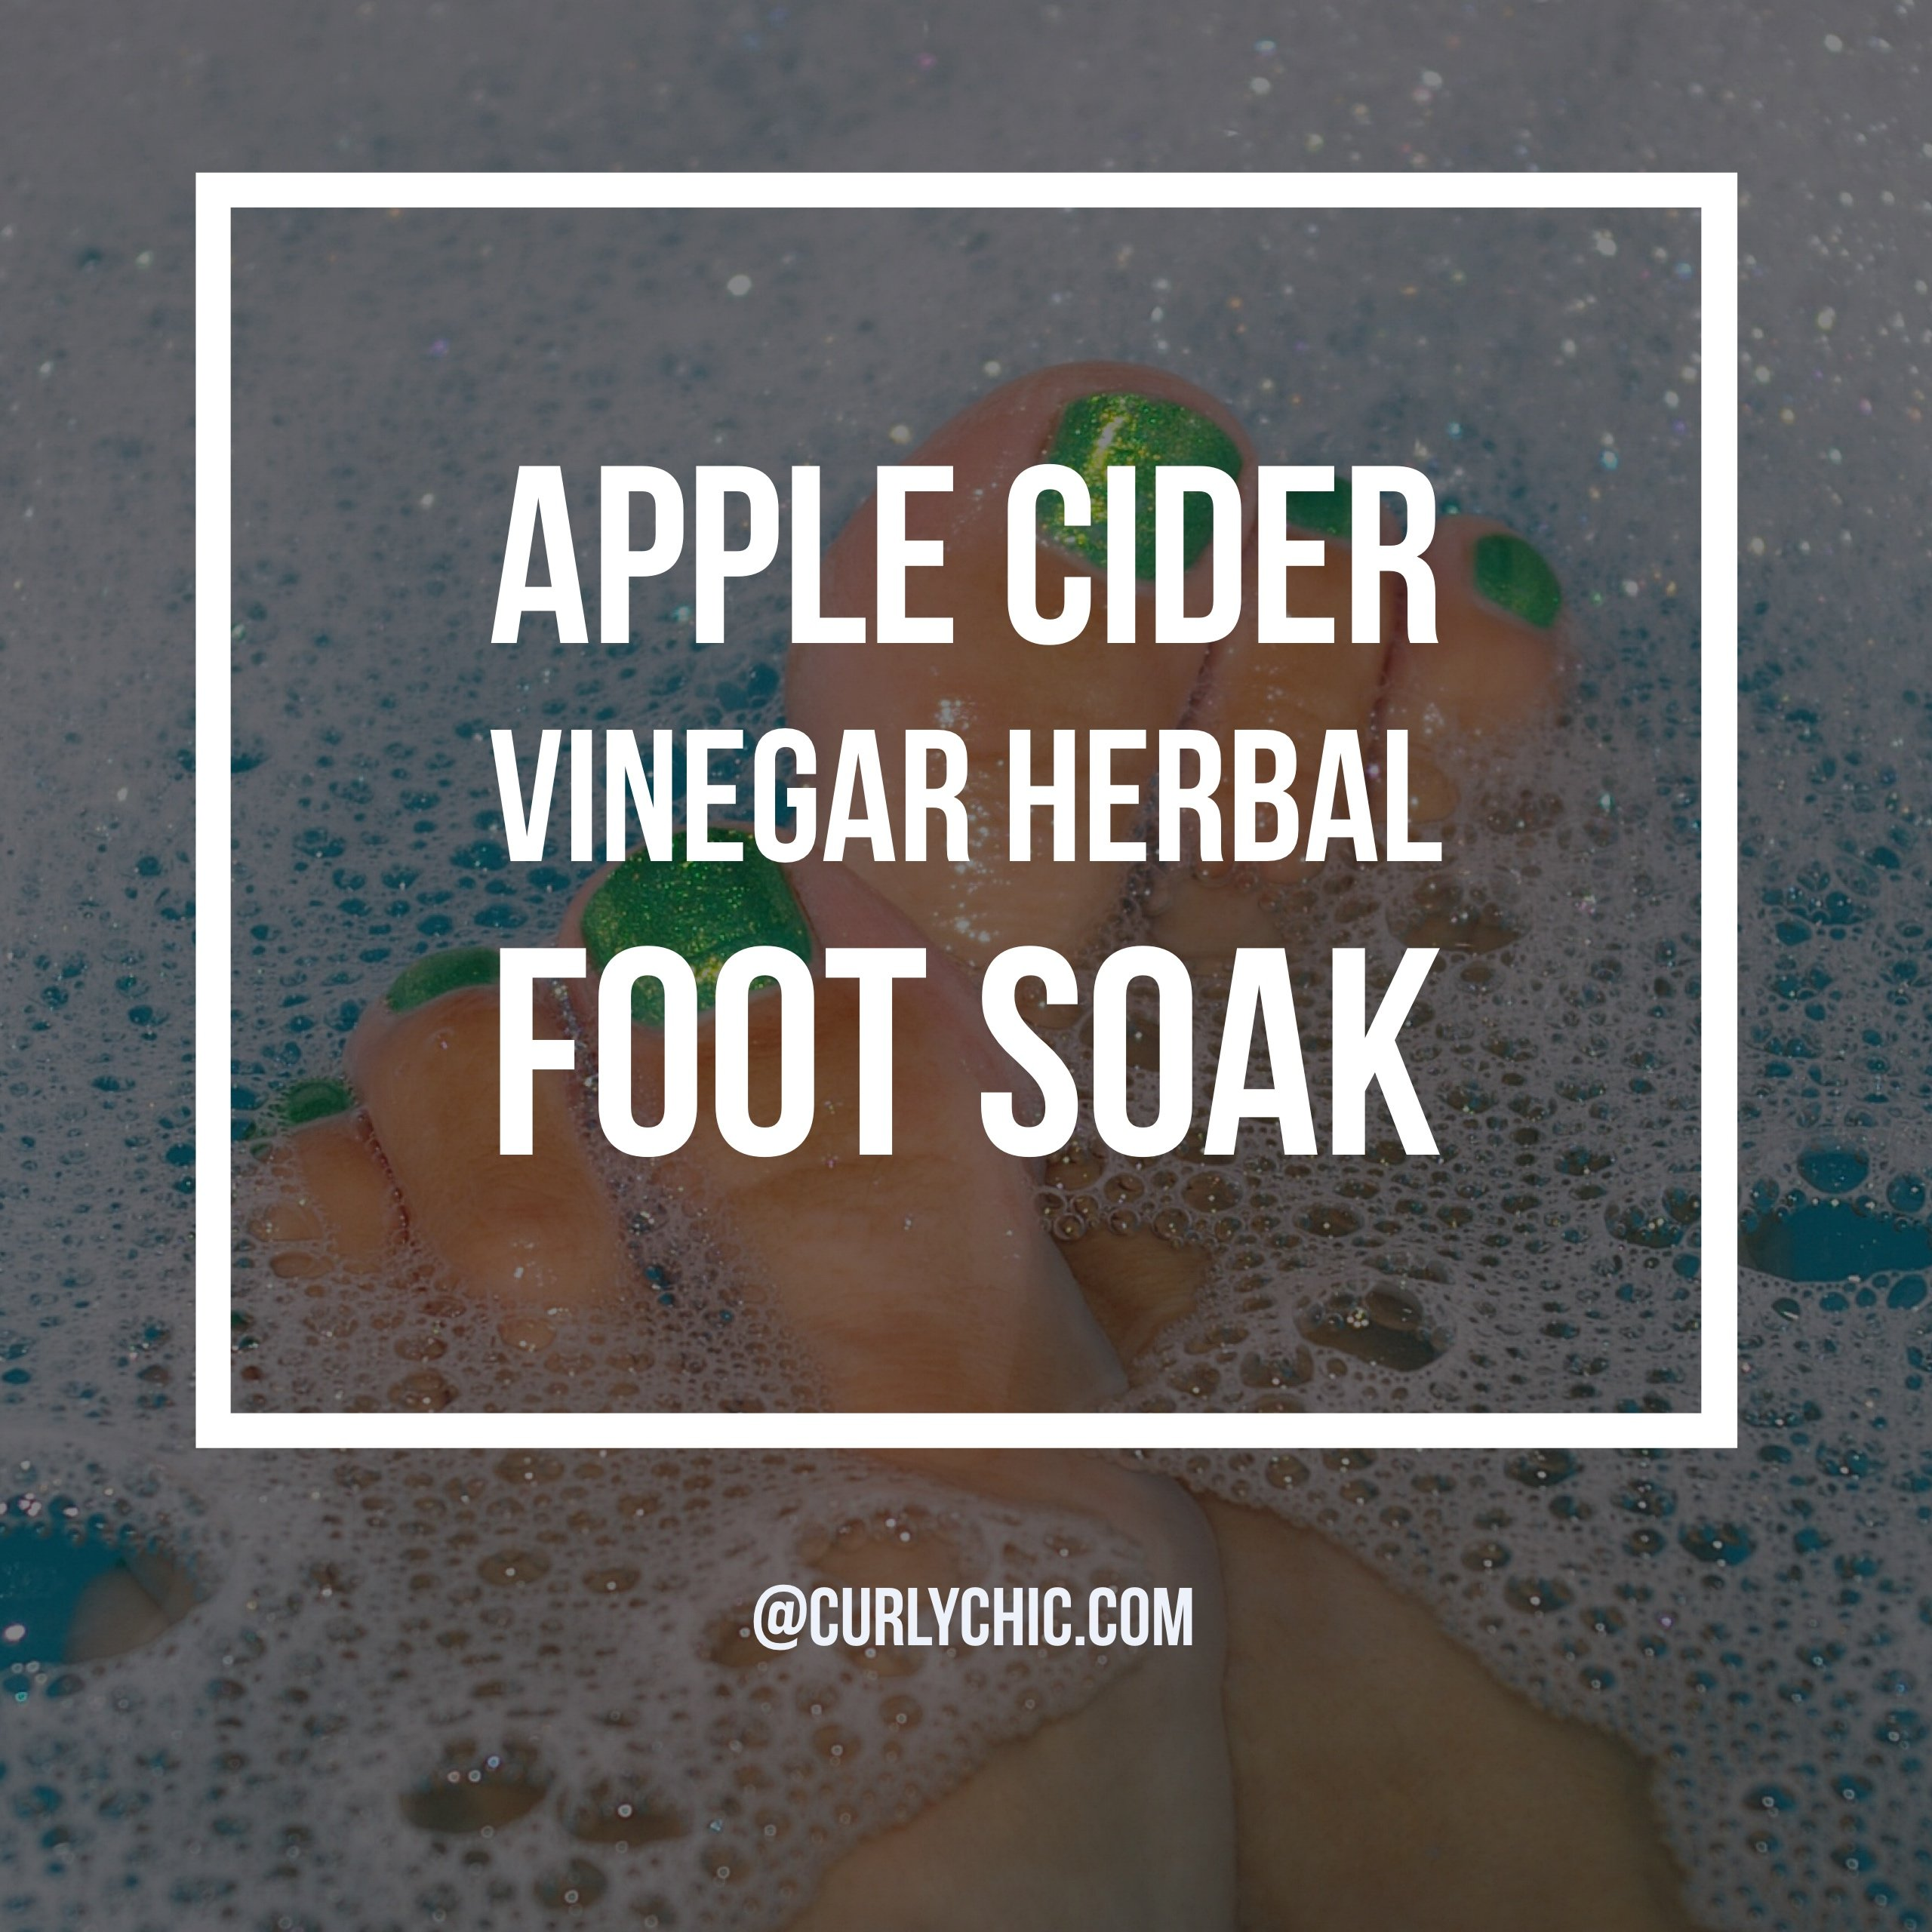 apple cider vinegar foot soak